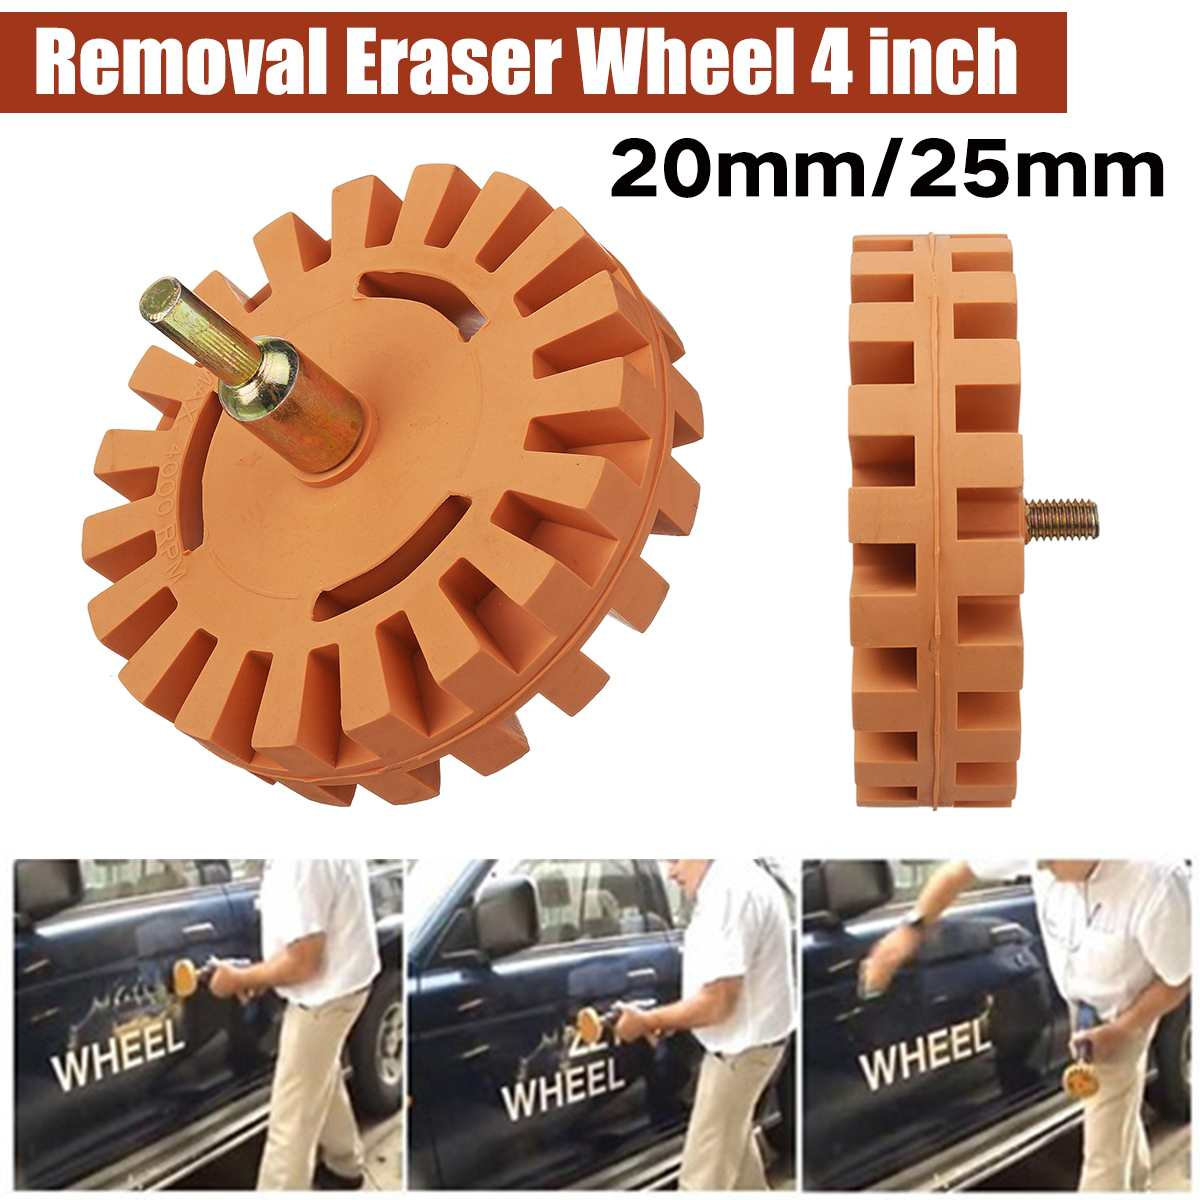 4 Inch Rubber Eraser Wheel Adapter For Remove Car Glue Adhesive Sticker Pinstripe Decal Graphic Auto Repair Paint Tool